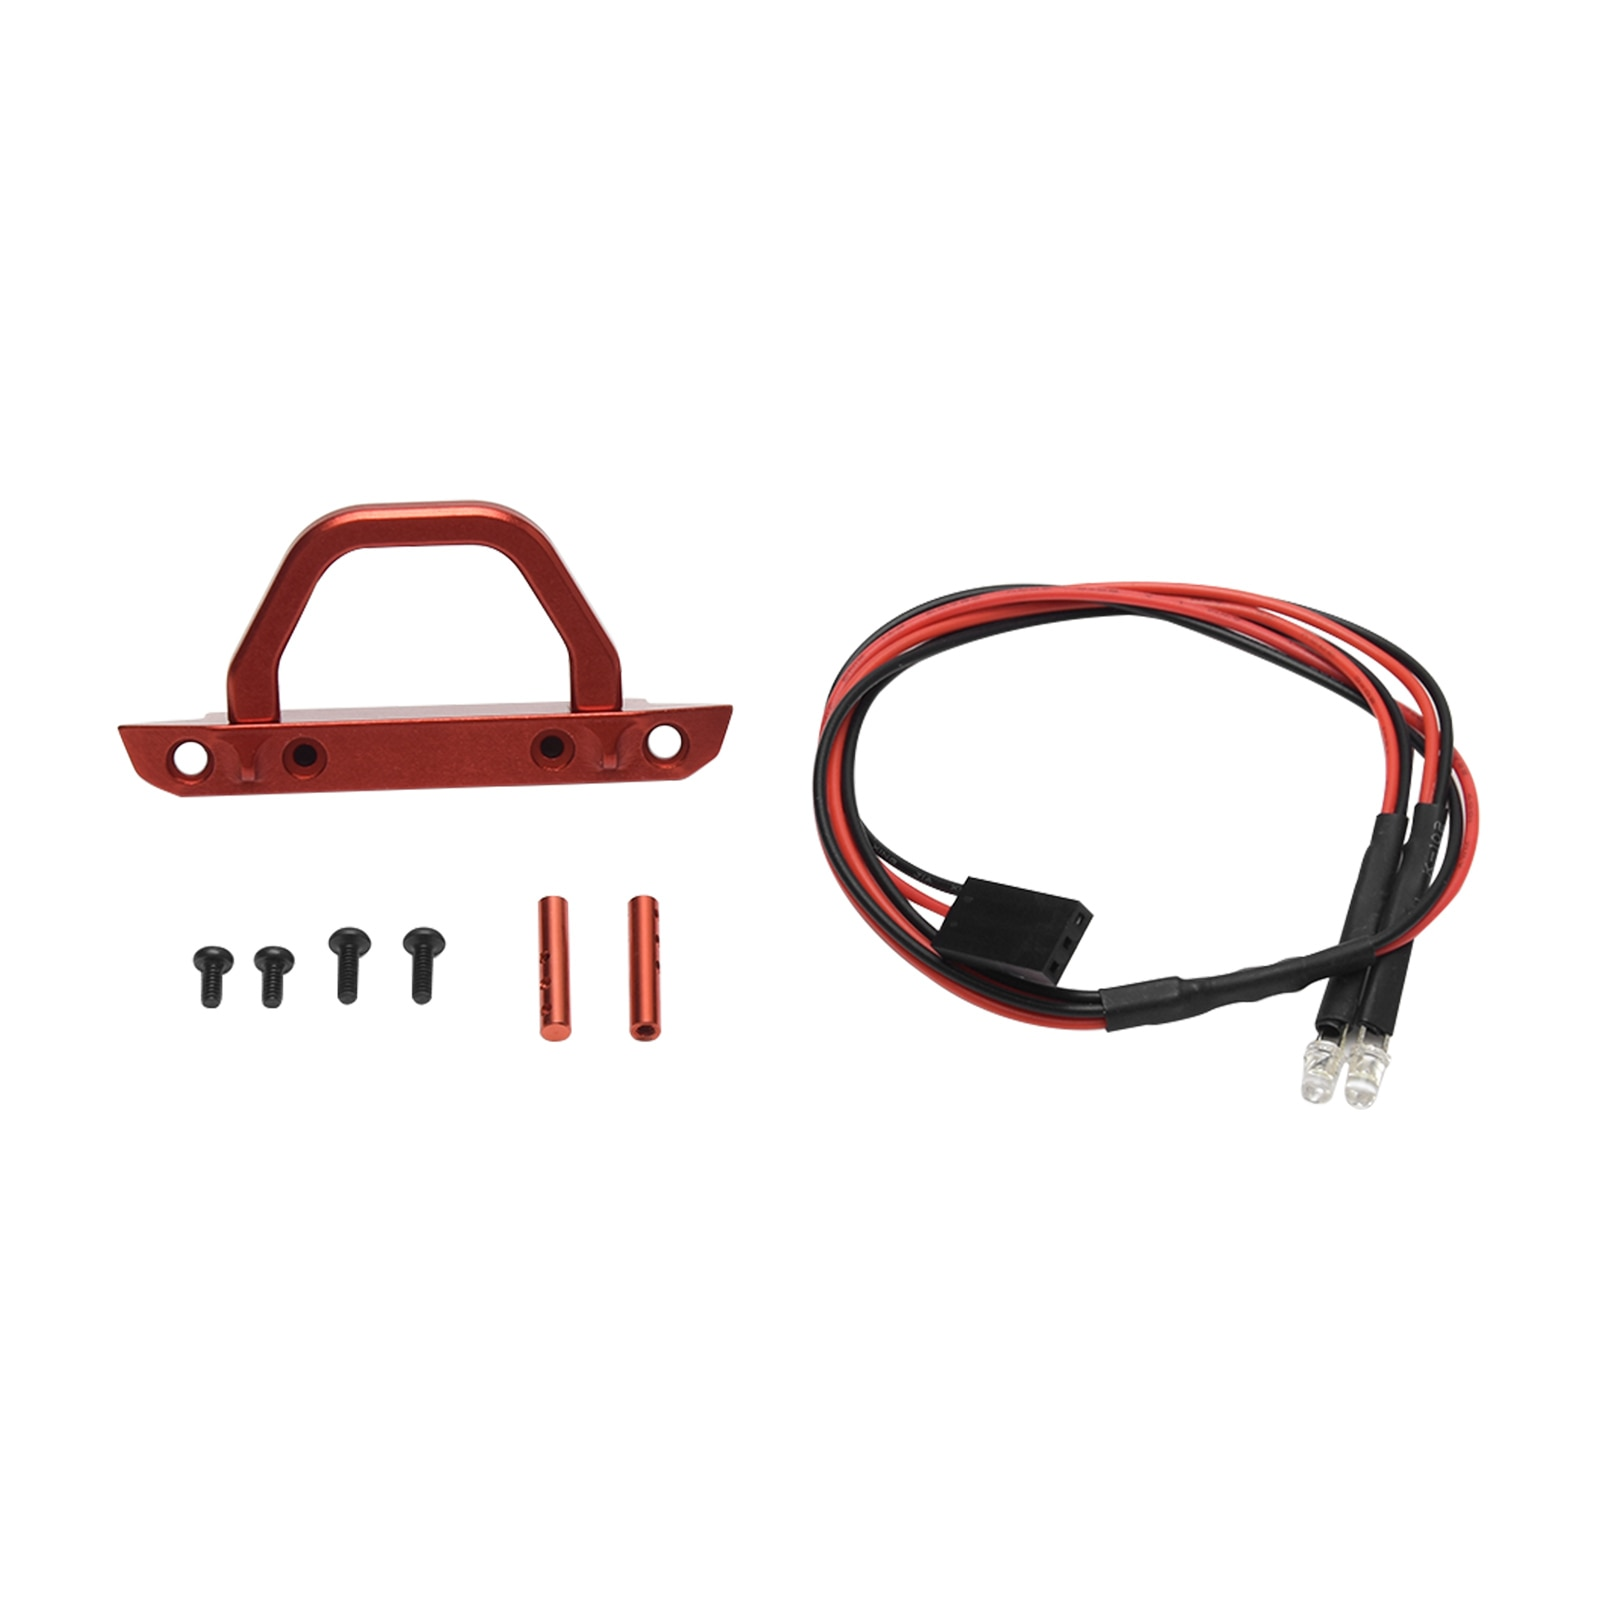 1:24 Easy Install With U Rings Aluminum Front Bumper RC Car Practical Home Replacement Parts Kids To